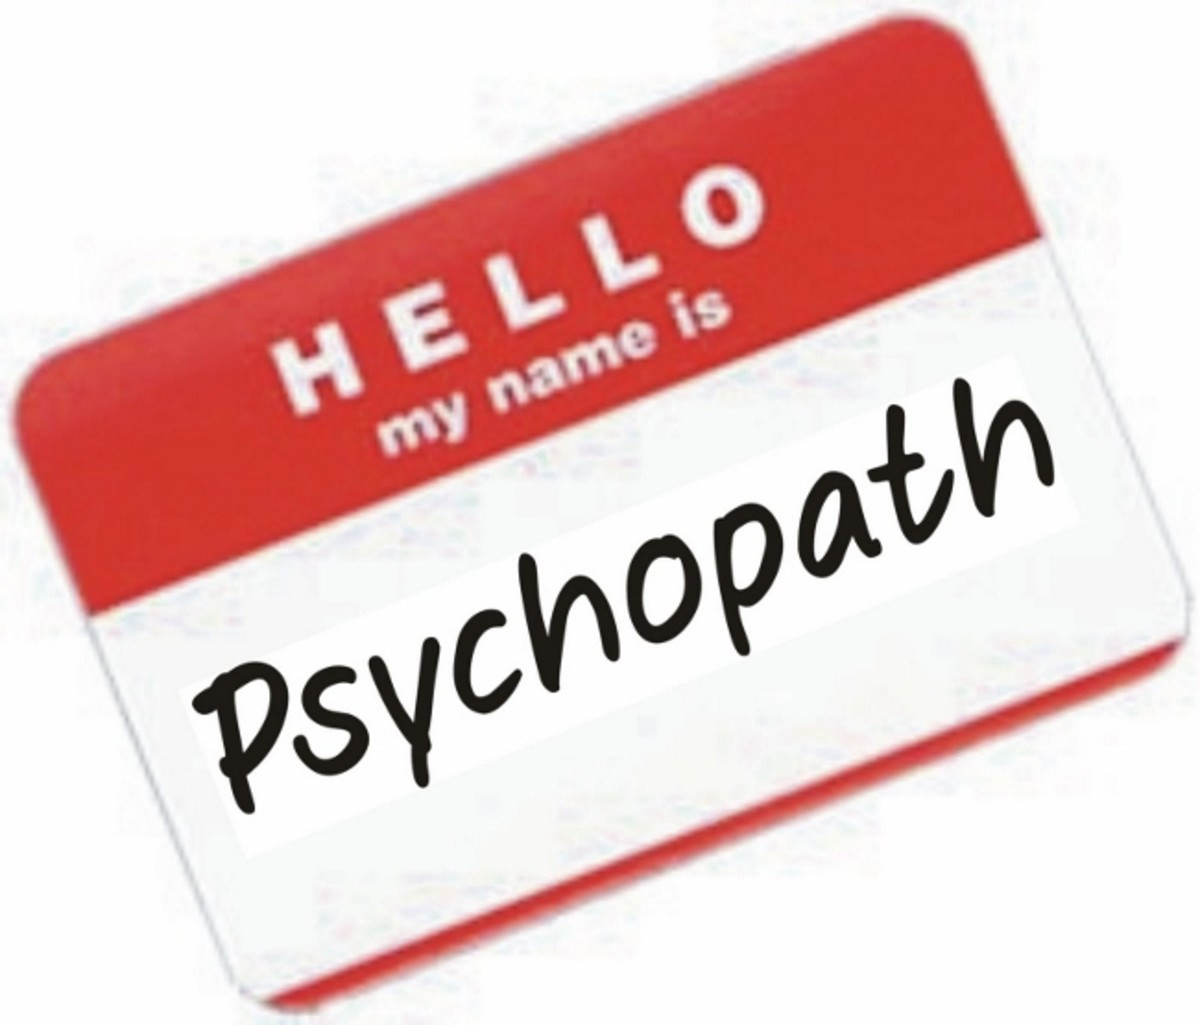 Sociopaths or Psychopaths  -  A Genetic Link